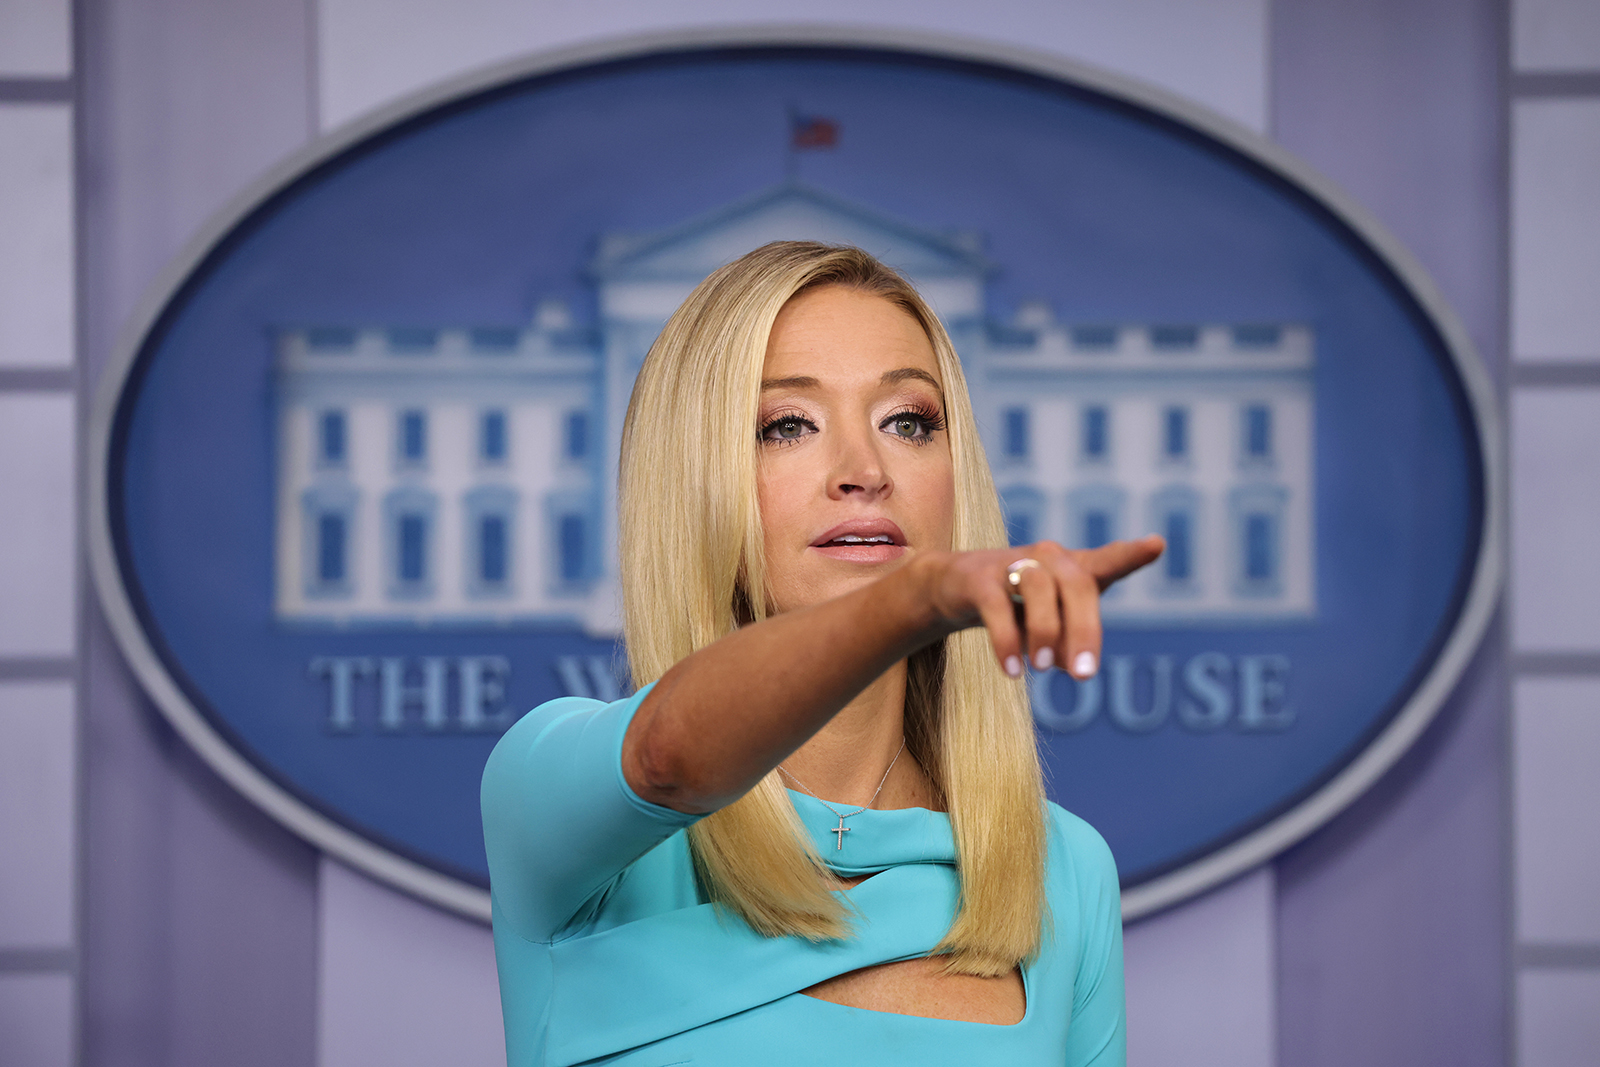 White House Press Secretary Kayleigh McEnany holds a news conference at the James Brady Press Briefing Room of the White House on Wednesday in Washington.